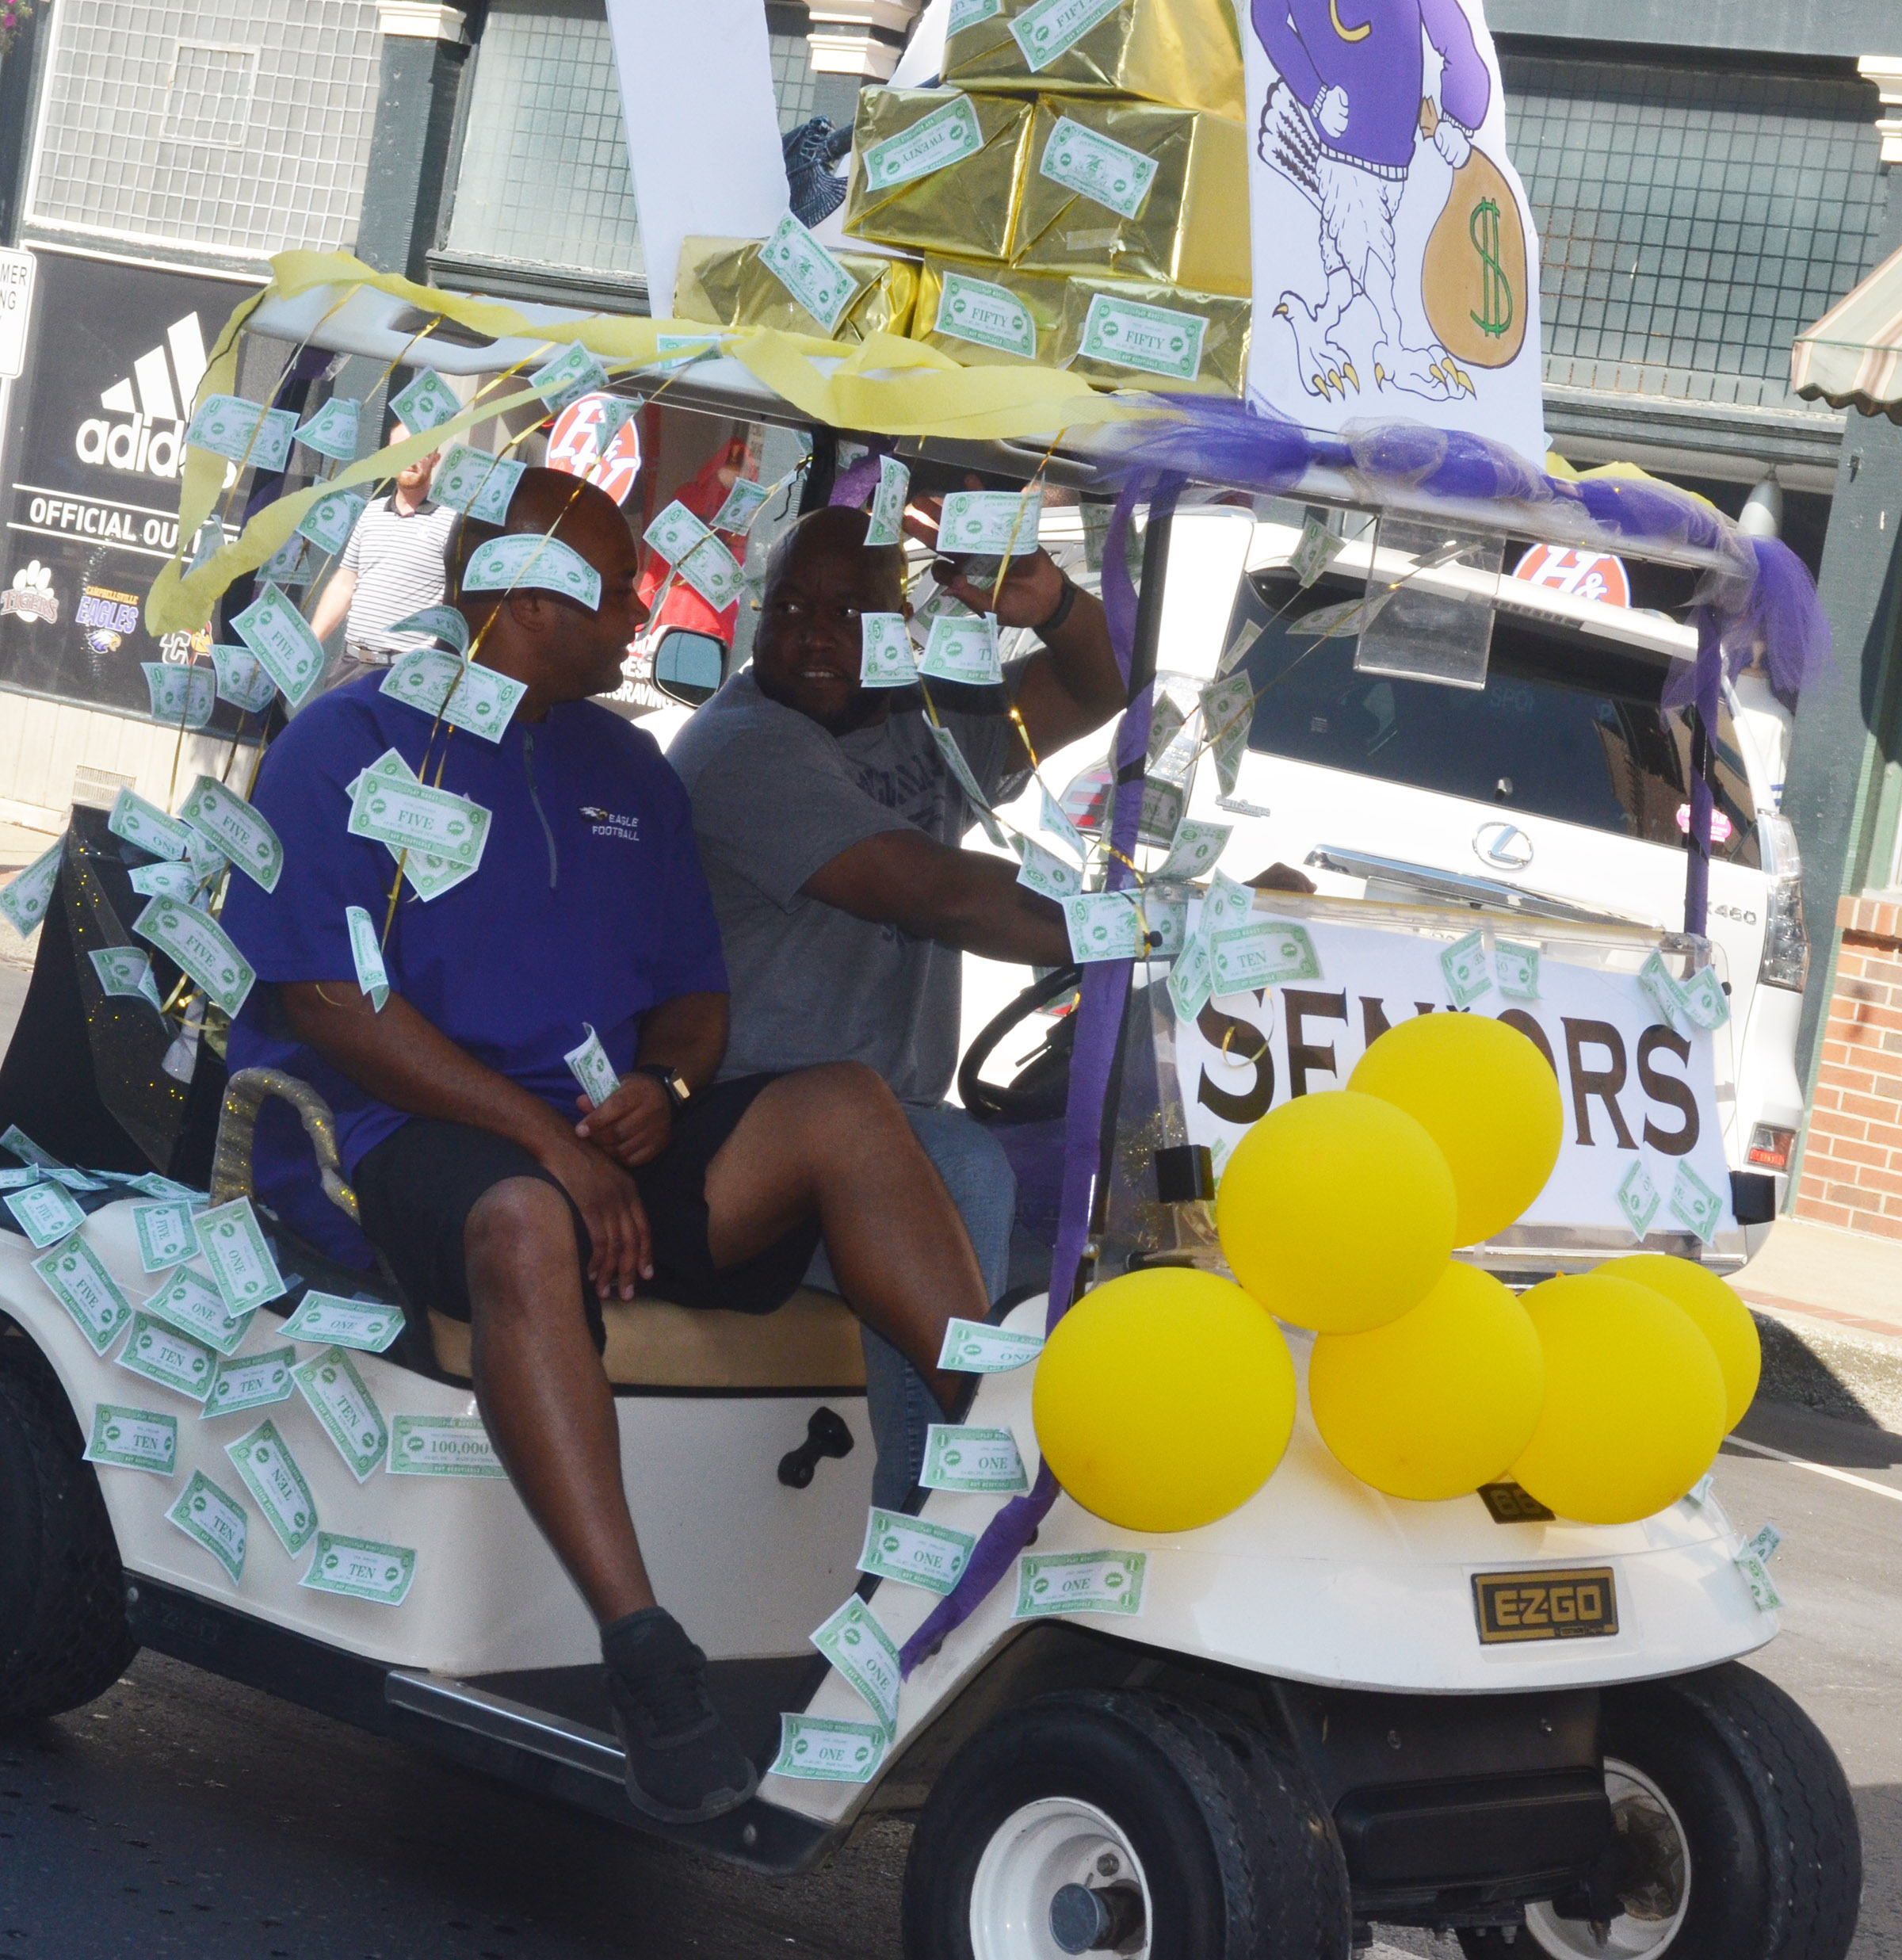 CHS seniors decorated this golf cart.